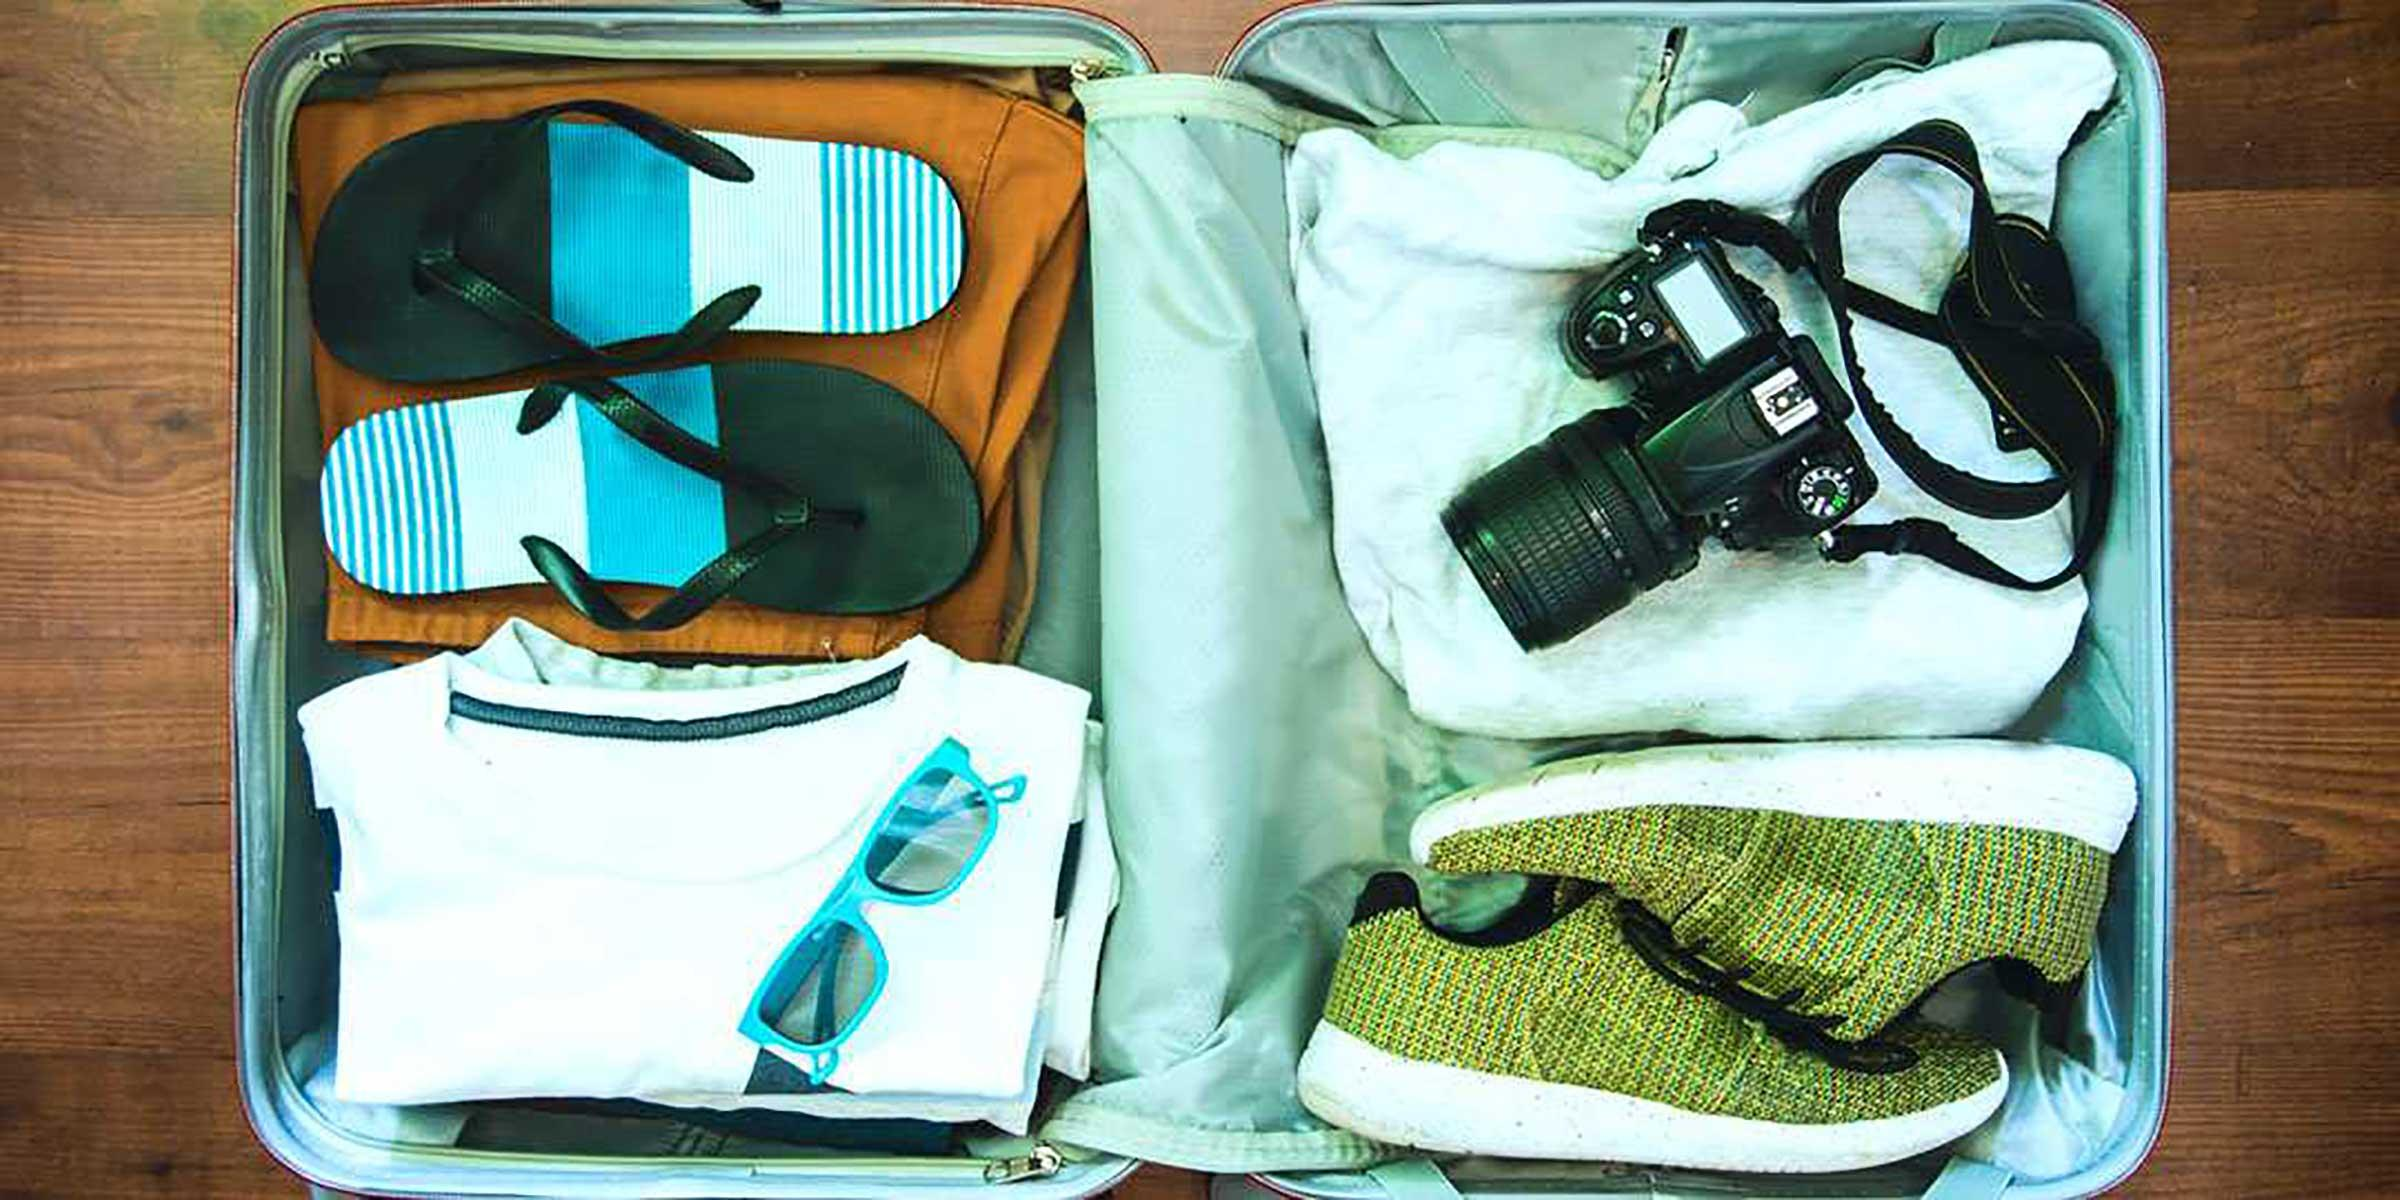 Suitcase packed for Caribbean Vacation